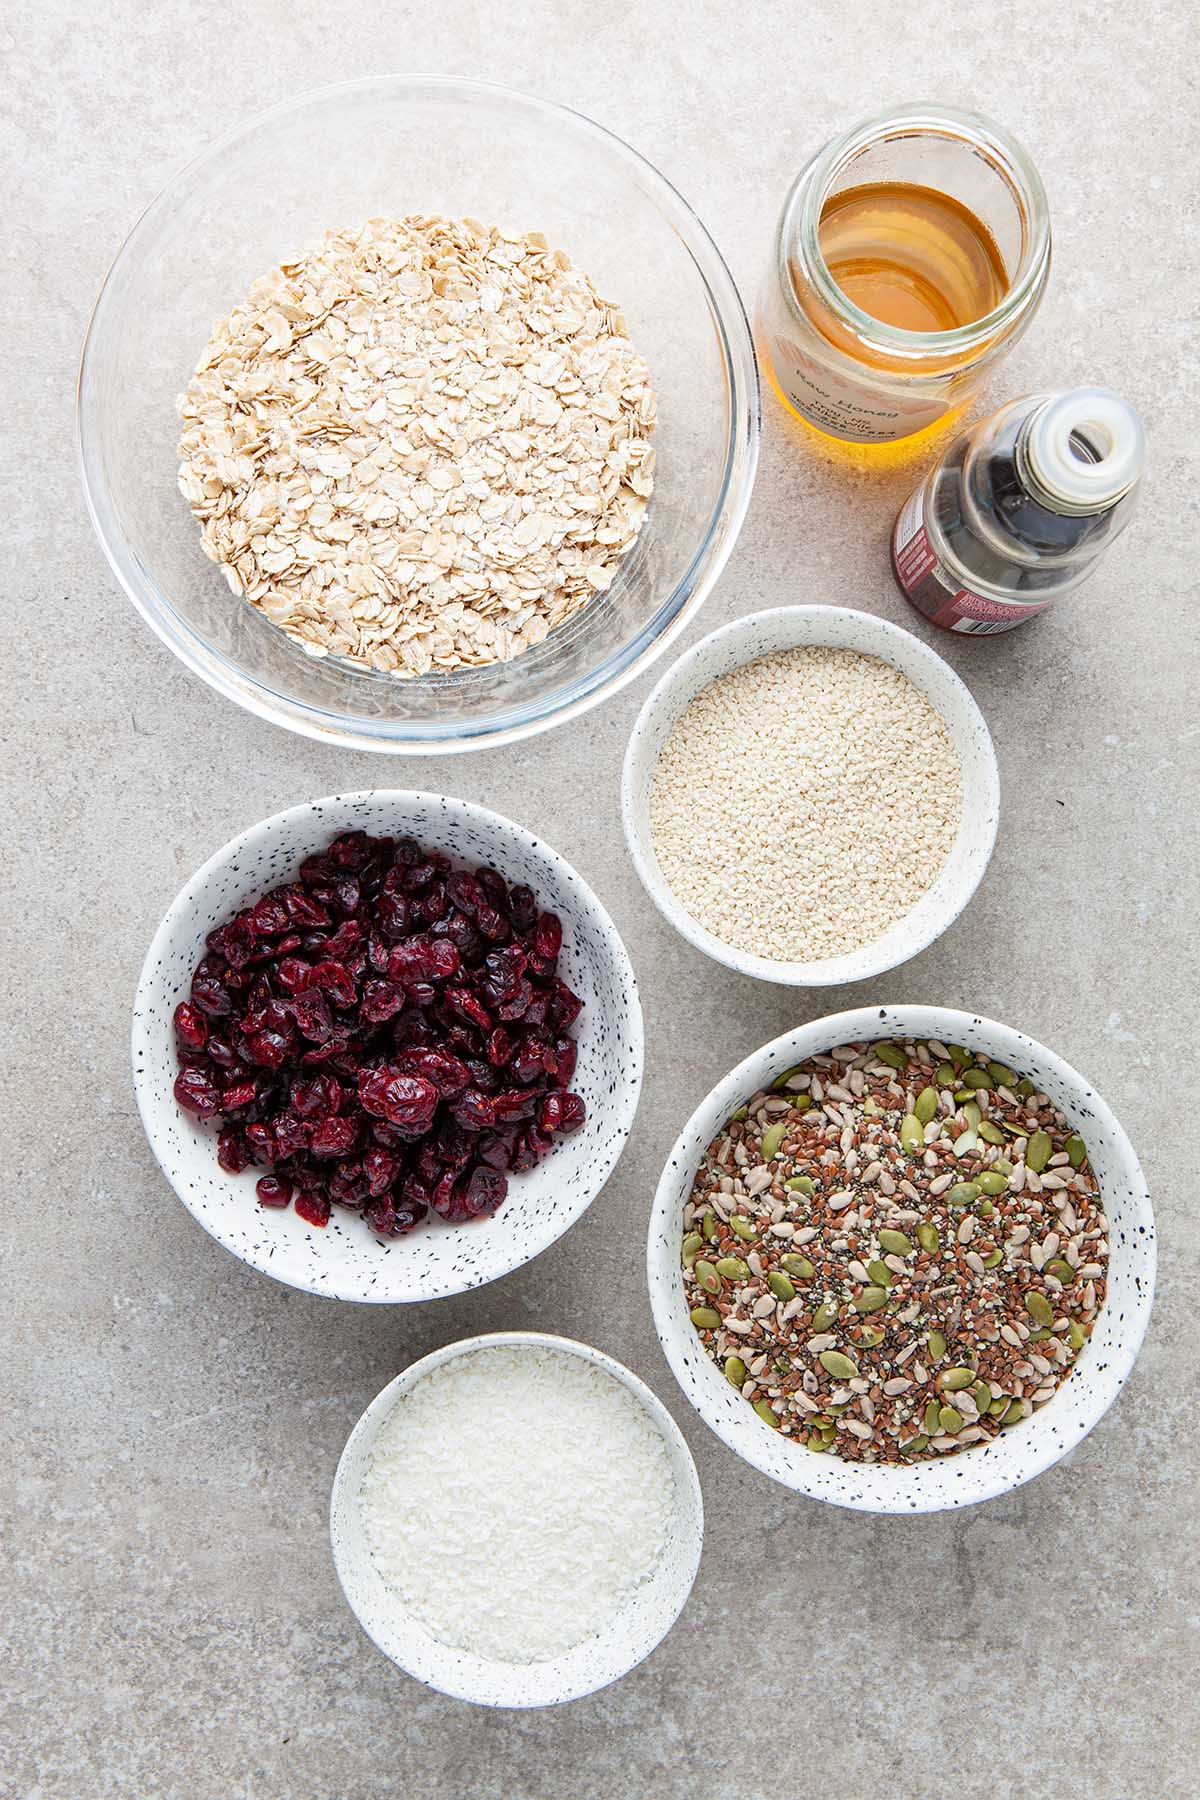 Ingredients to make nut-free granola with honey.